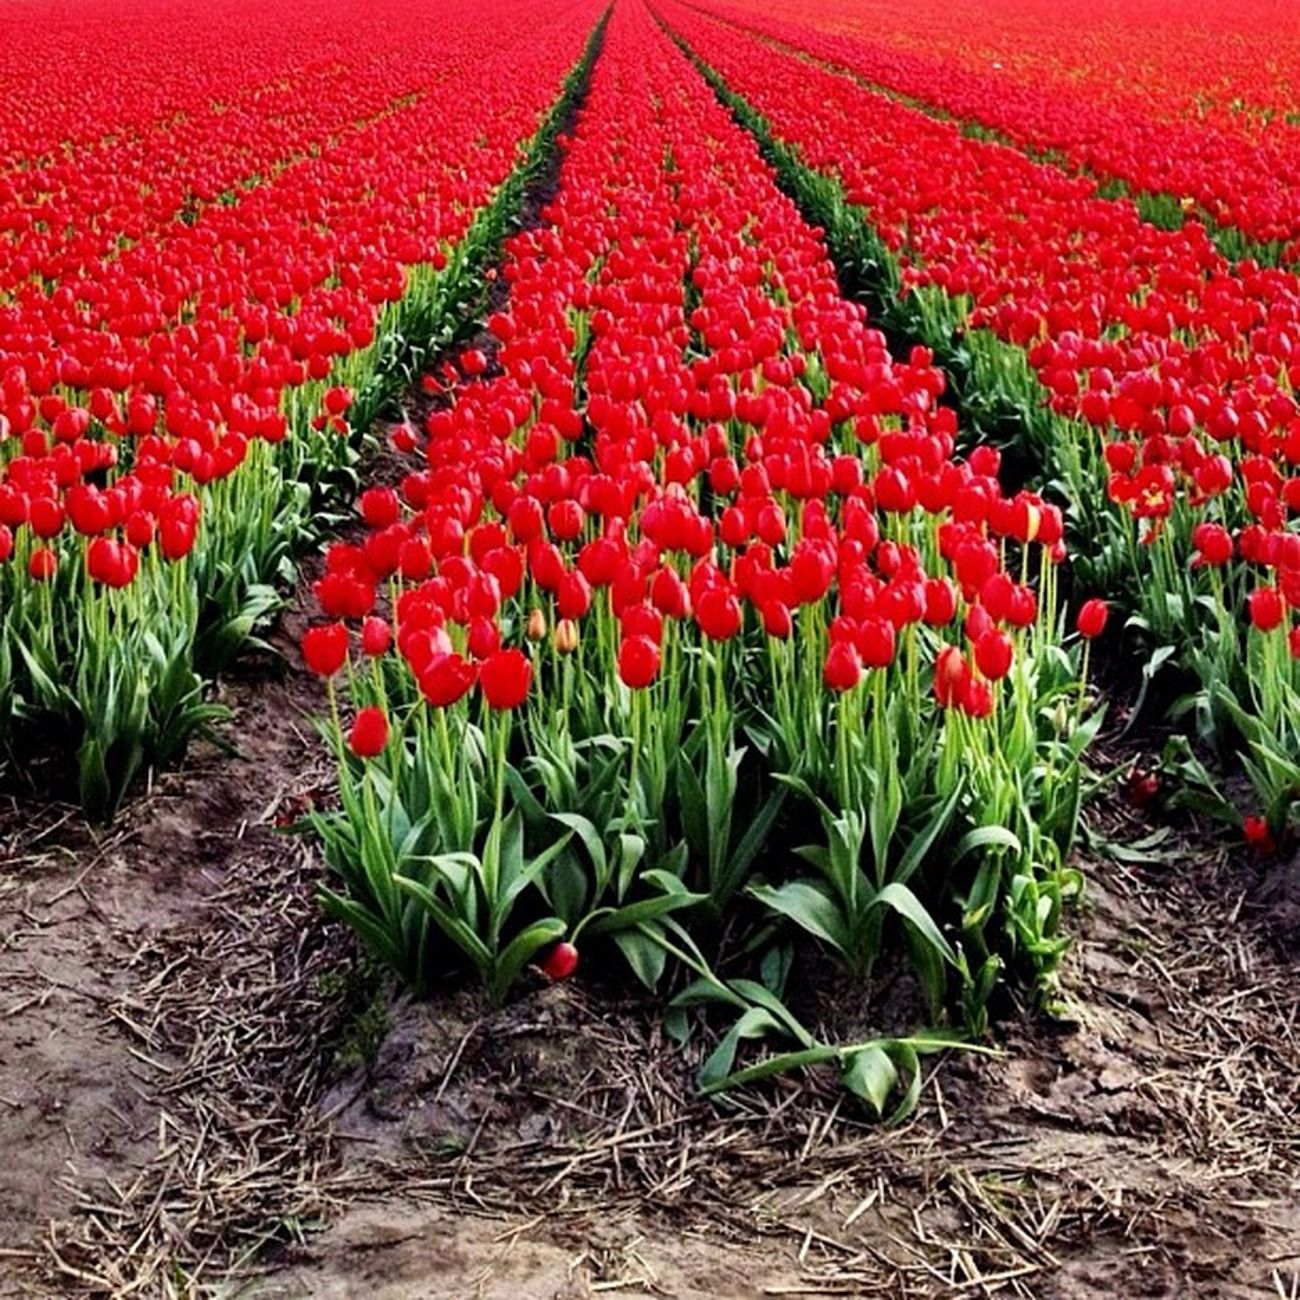 RED #tulips #igersholland #holland #dutch #flower #ubiquography #keukenhof #tulipfieldsexperience Flower Holland Tulips Dutch Keukenhof Ubiquography Igersholland Theflowerofgardens Tulipfieldsexperience O2travel